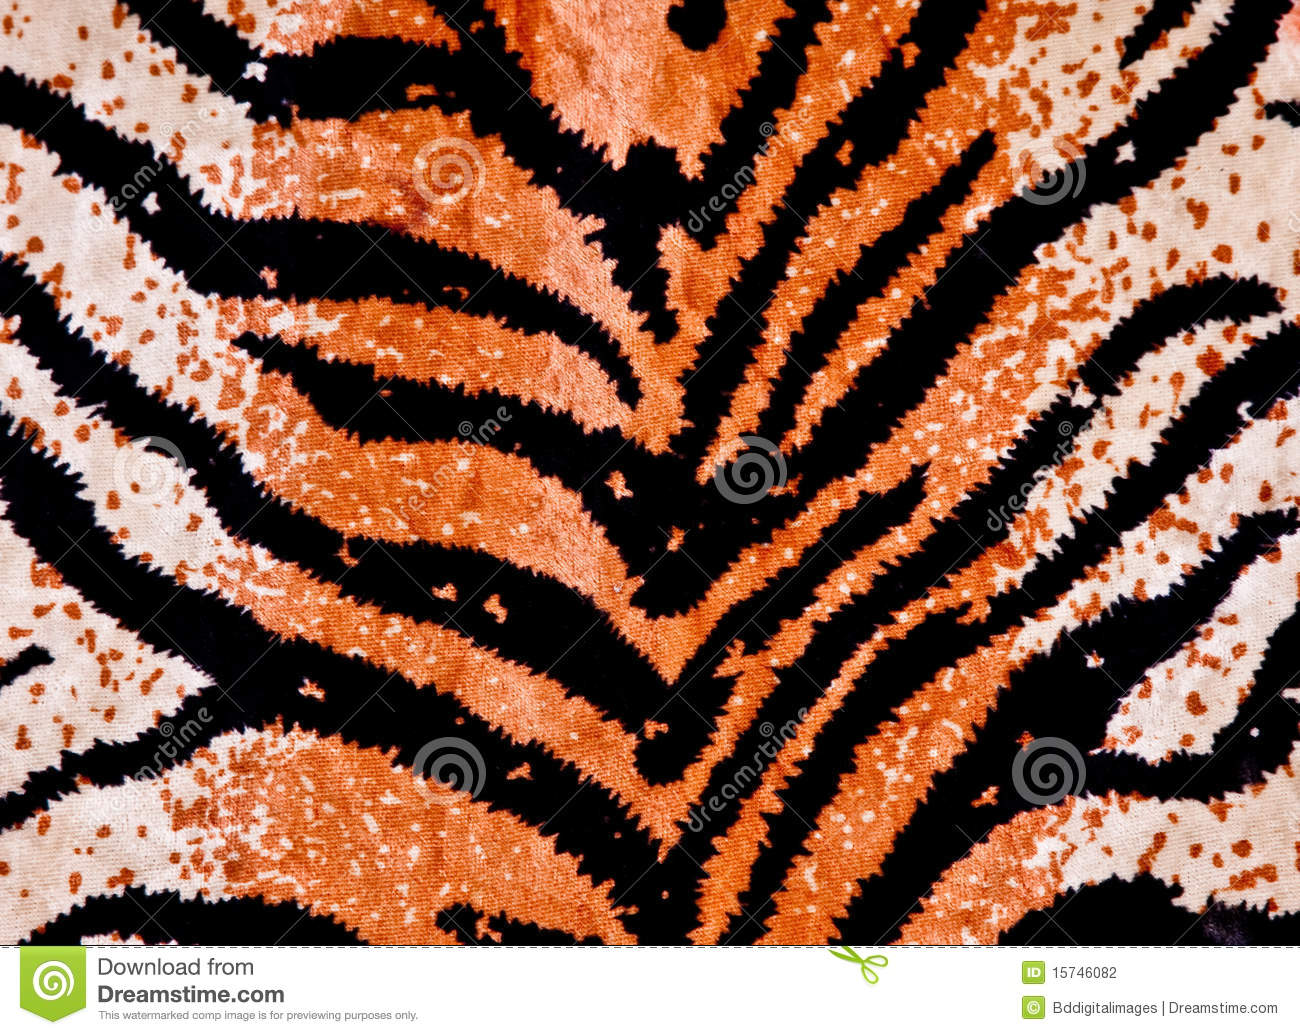 Tiger paw print background - photo#15